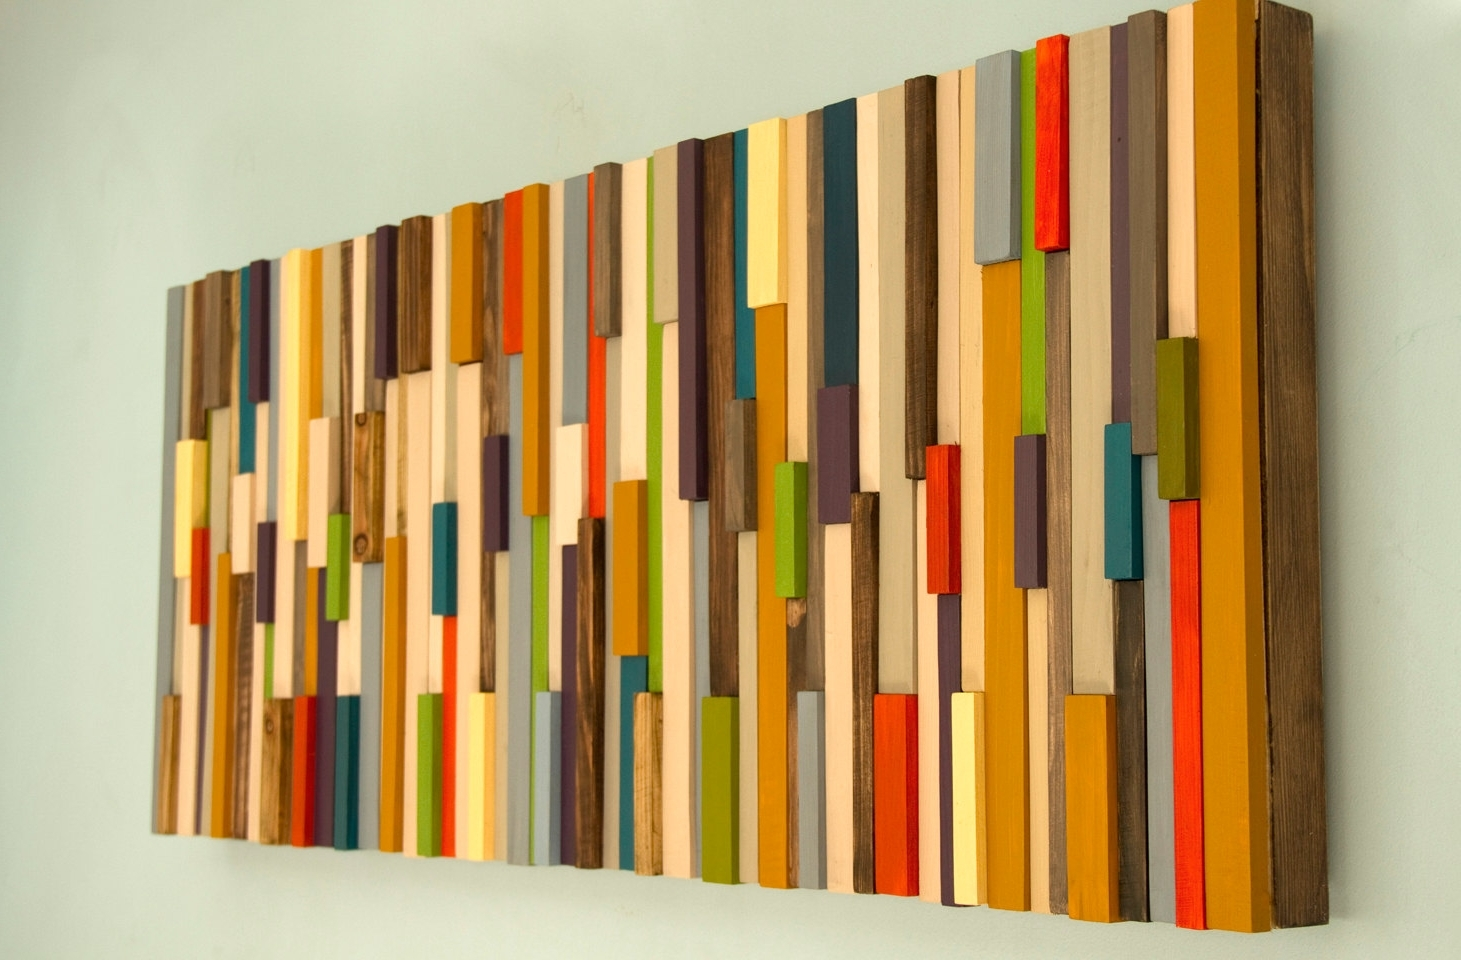 Modern Large Wall Art, Reclaimed Wood Art Sculpture, Painted Wood In Most Recent Wood Art Wall (View 11 of 15)